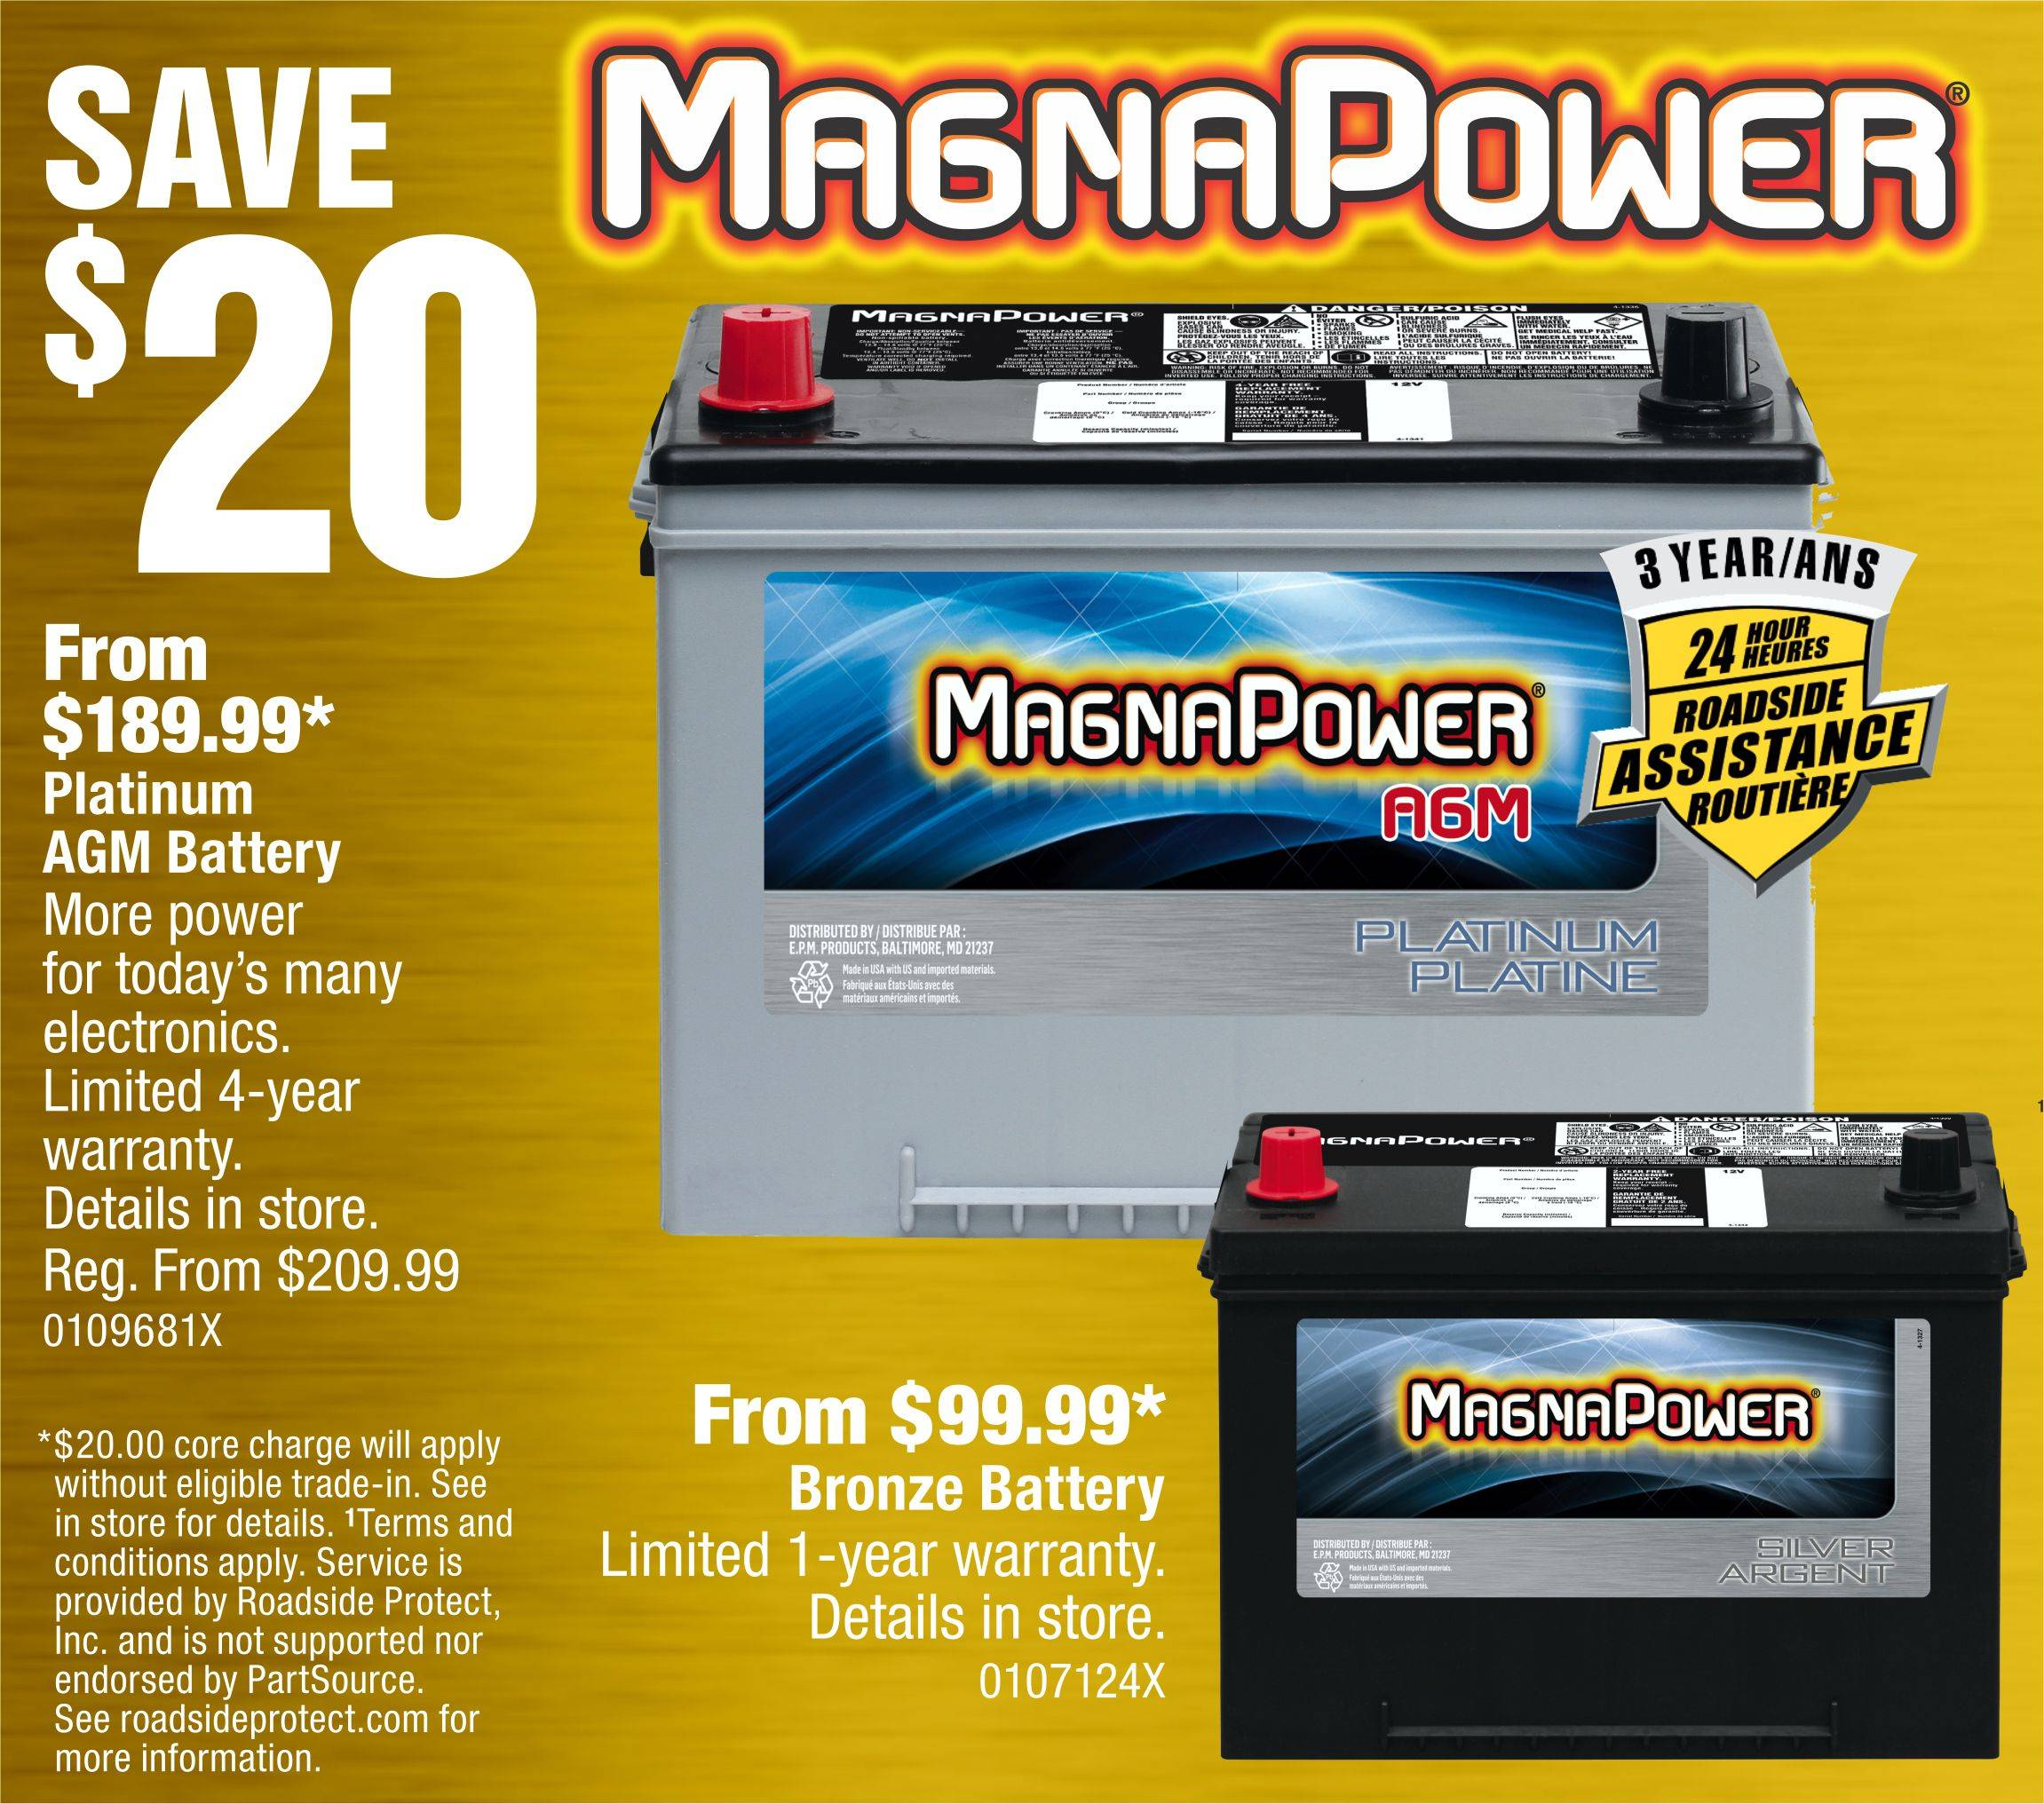 Save $20 on MagnaPower car batteries